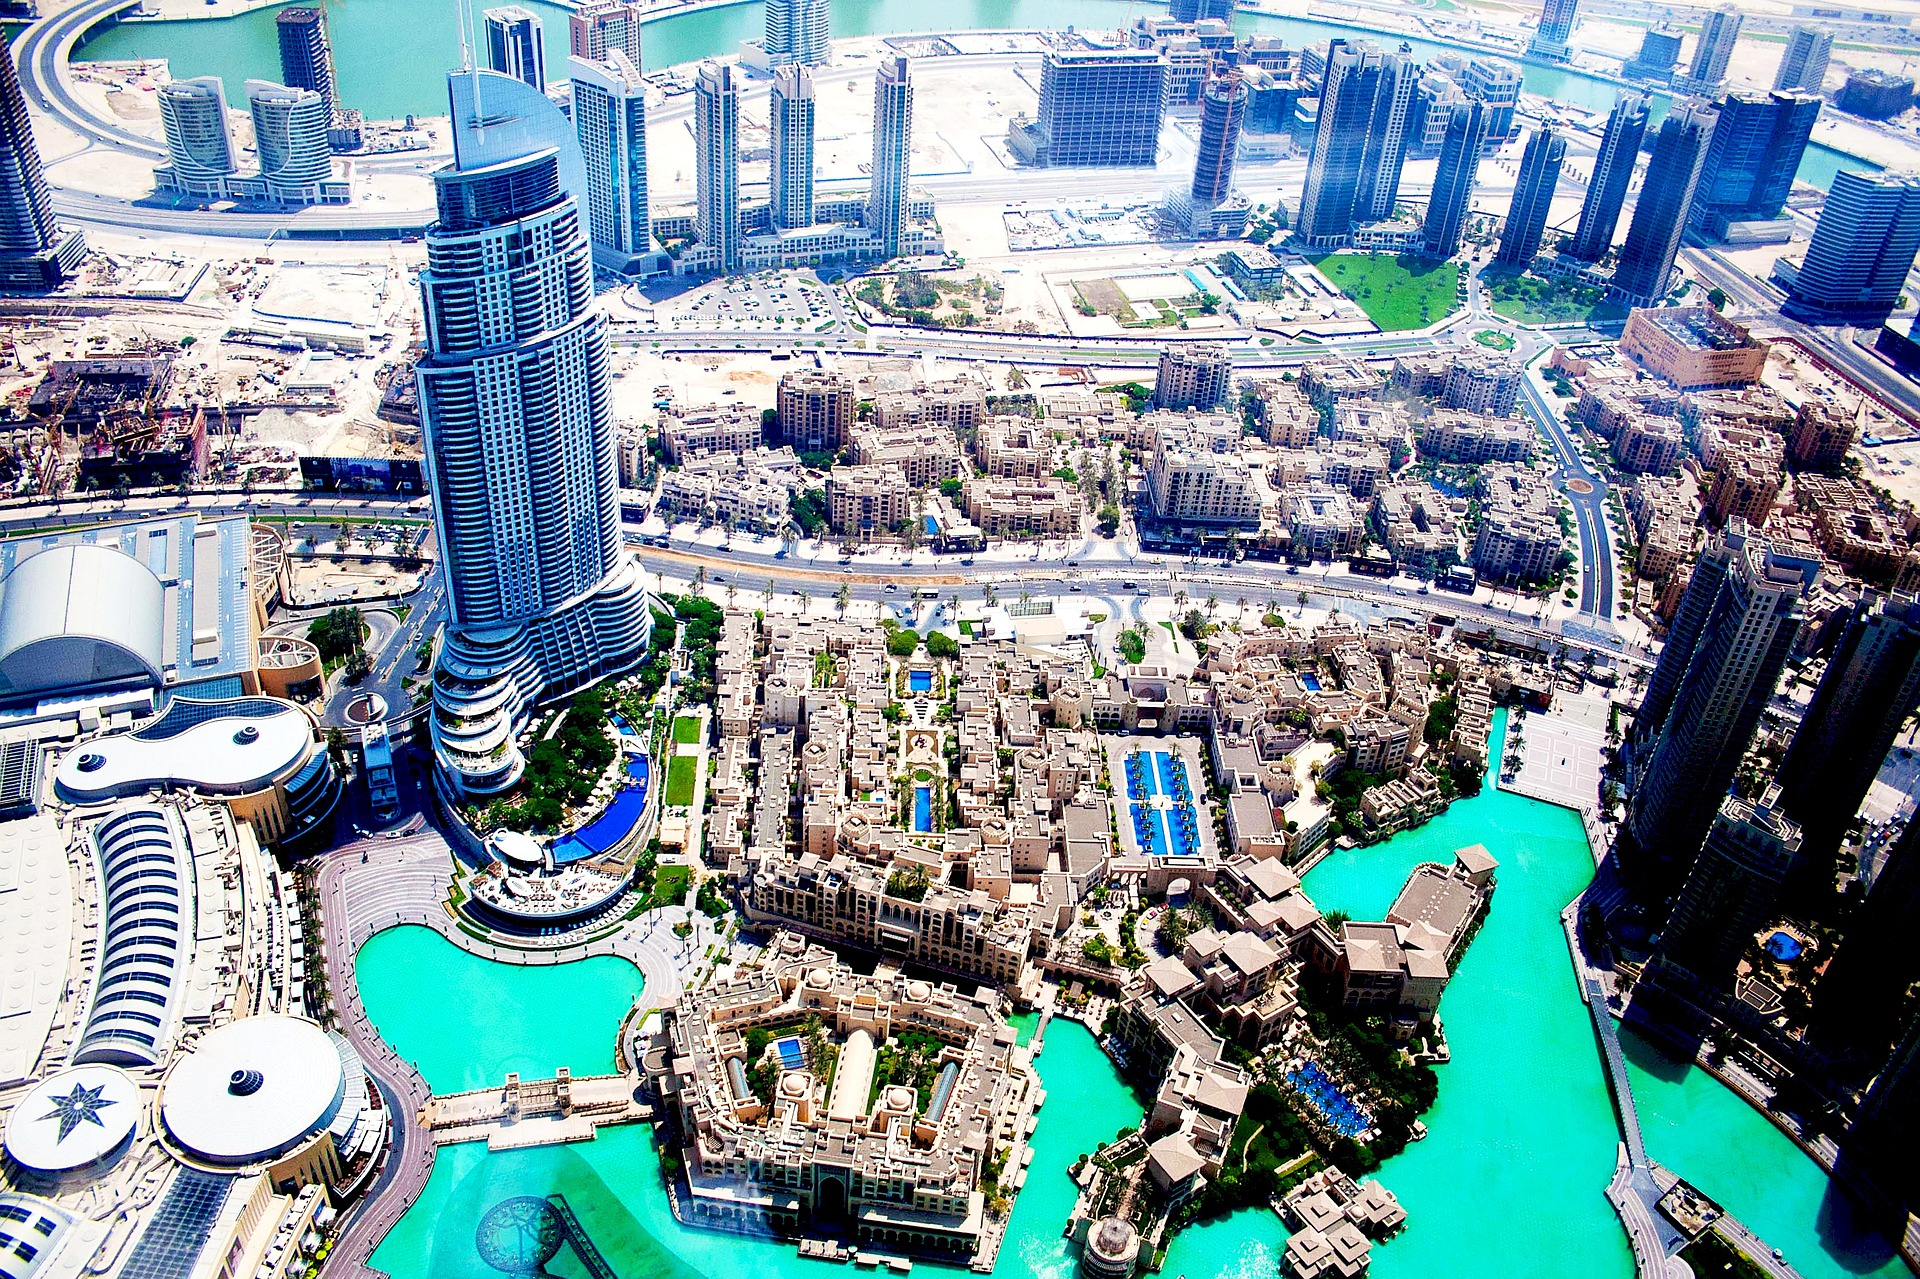 Aerial view Burj Khalifa Lake, with the Dubai Fountain, Dubai